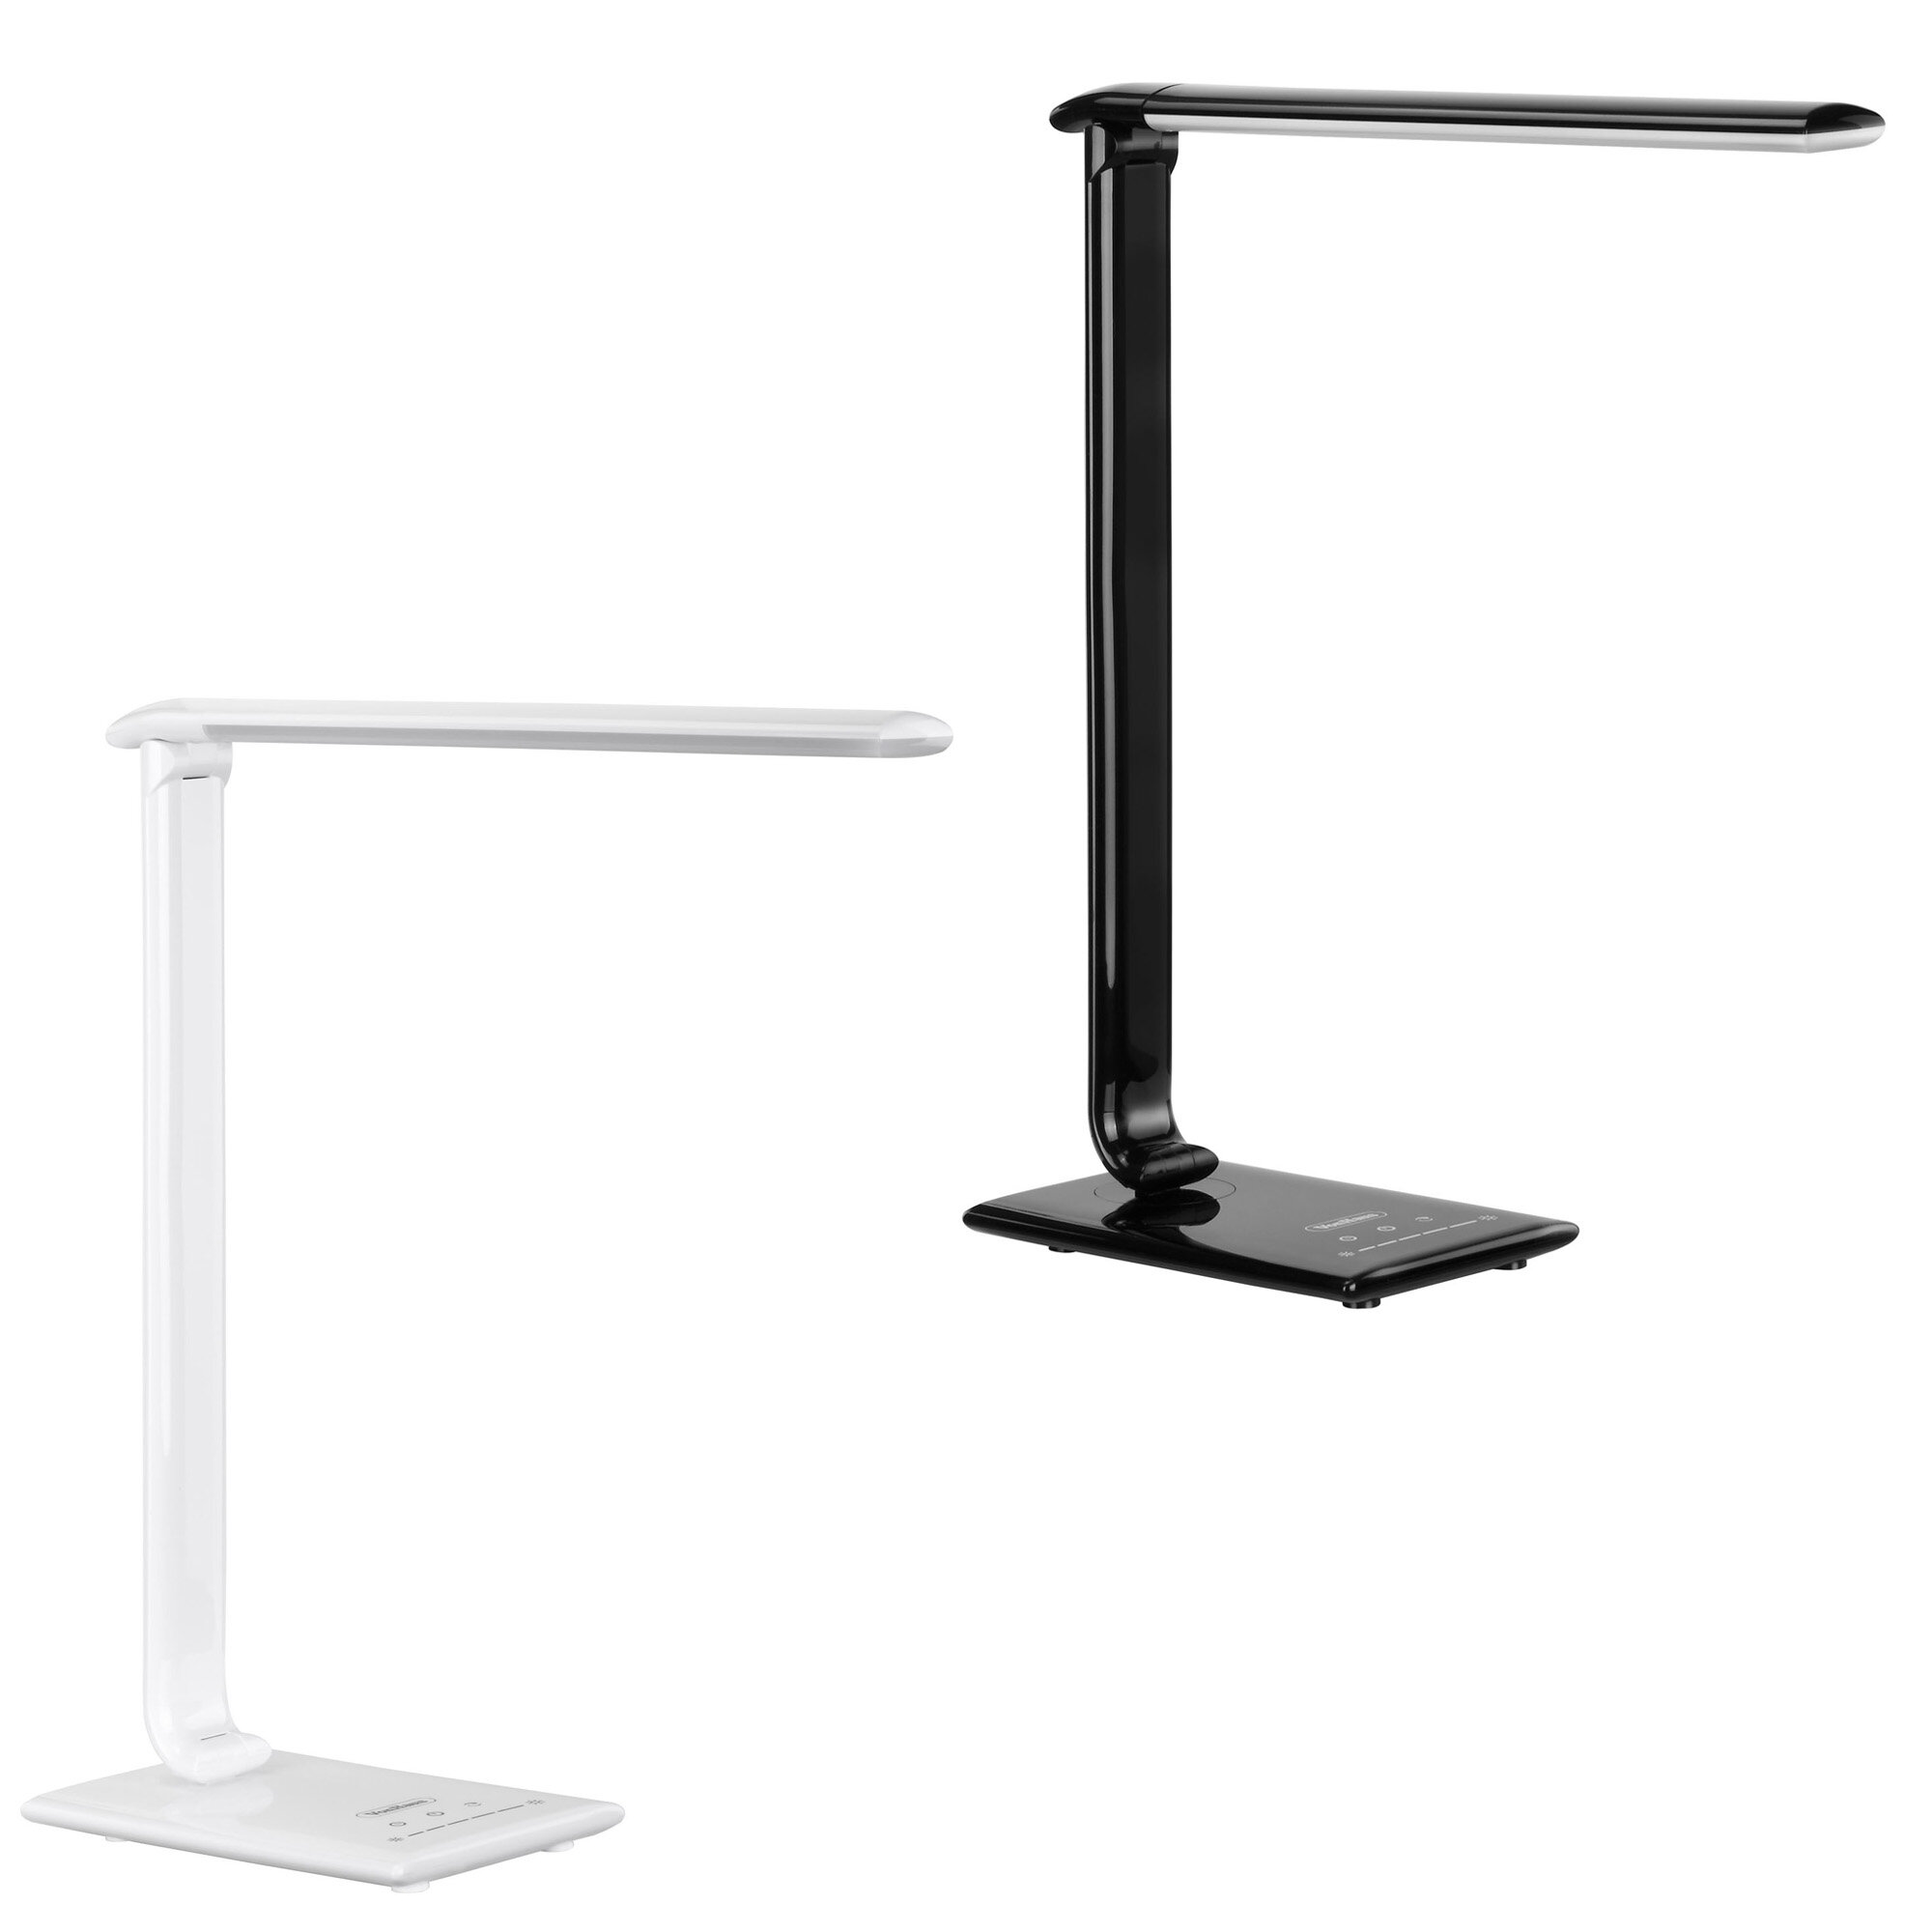 adesso products led windsor lamp desk adessocharge